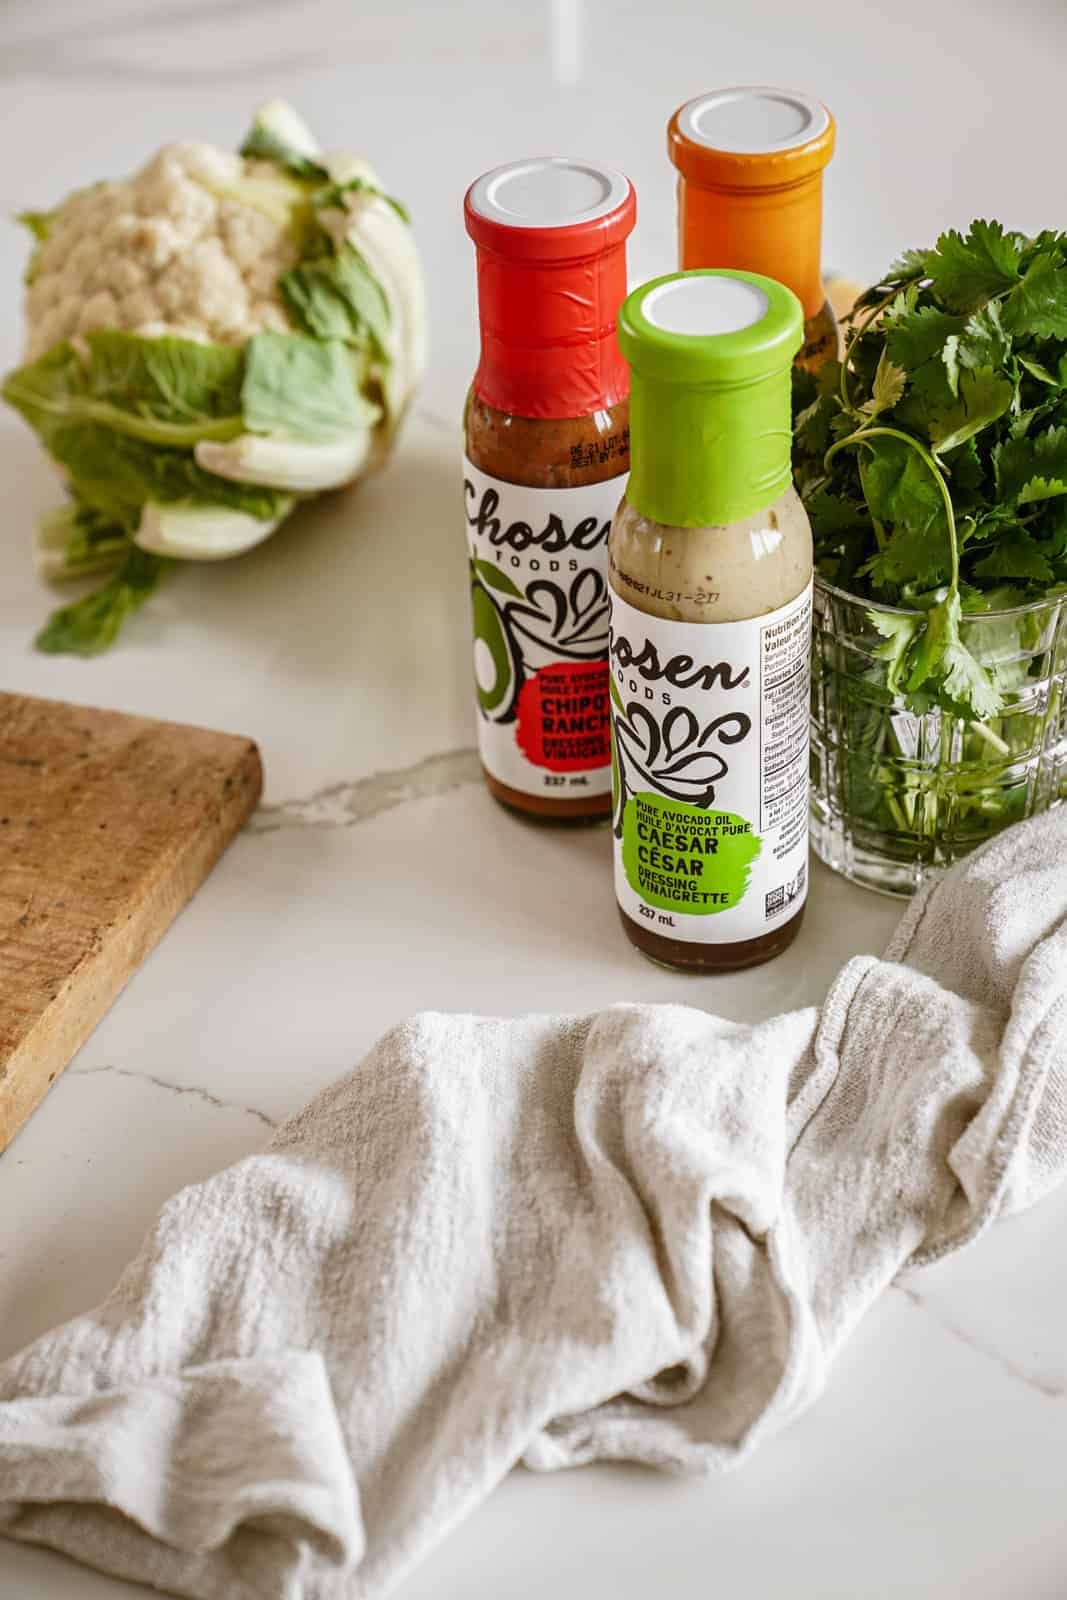 Chosen Foods salad dressings on countertop for baked tofu power bowl